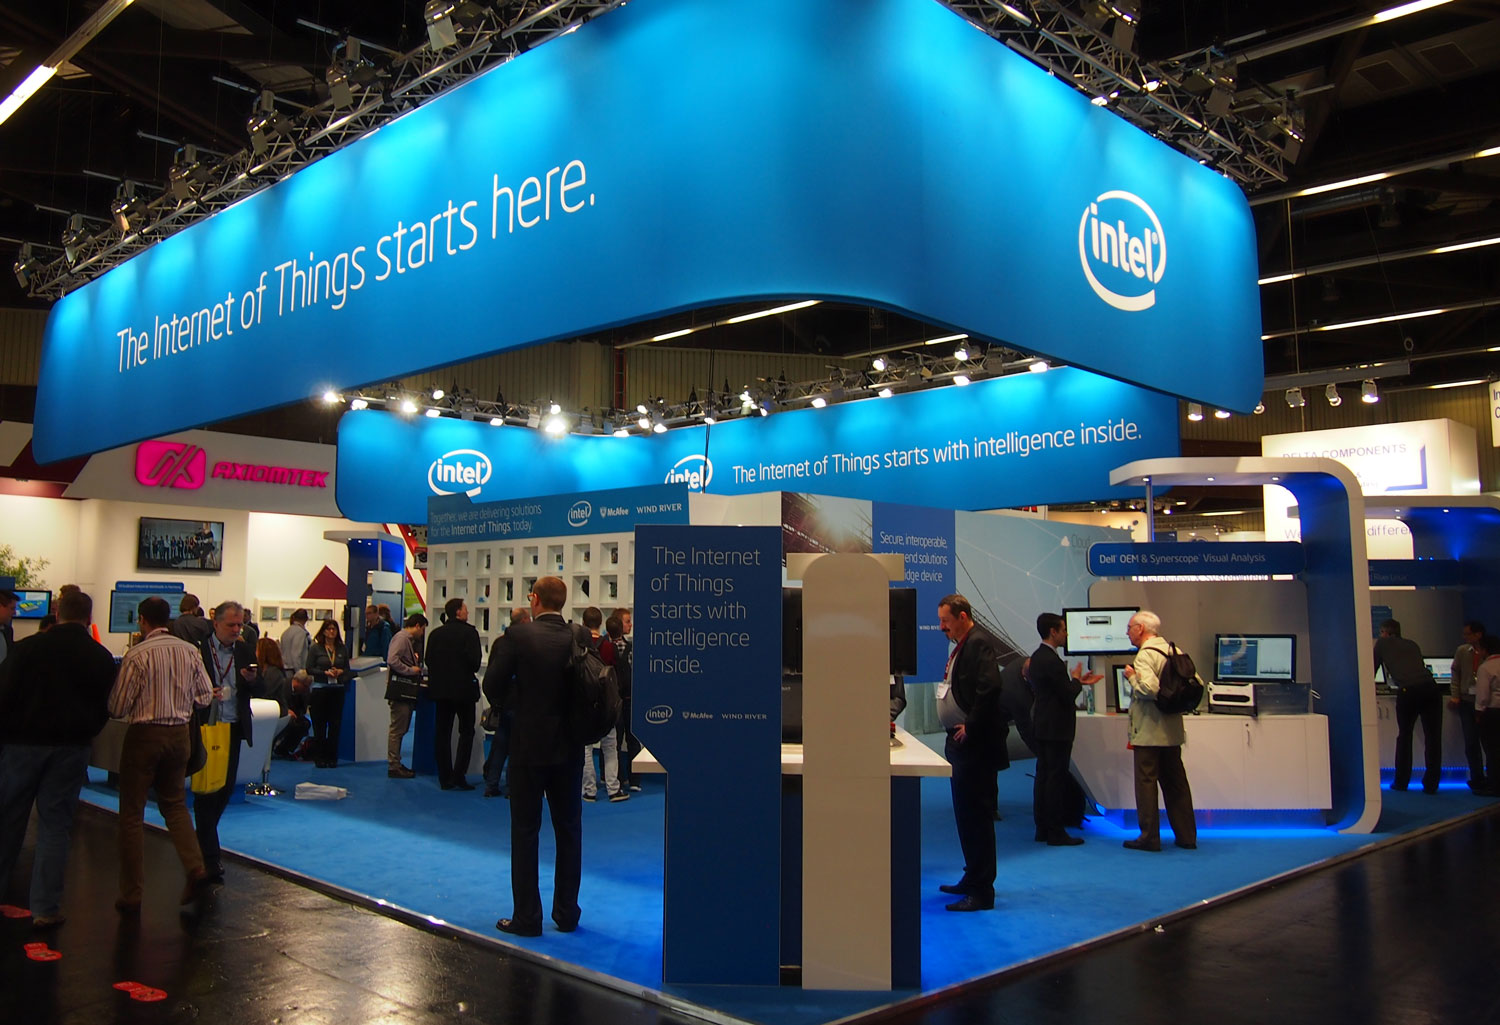 Embedded Nuremberg Intel Booth